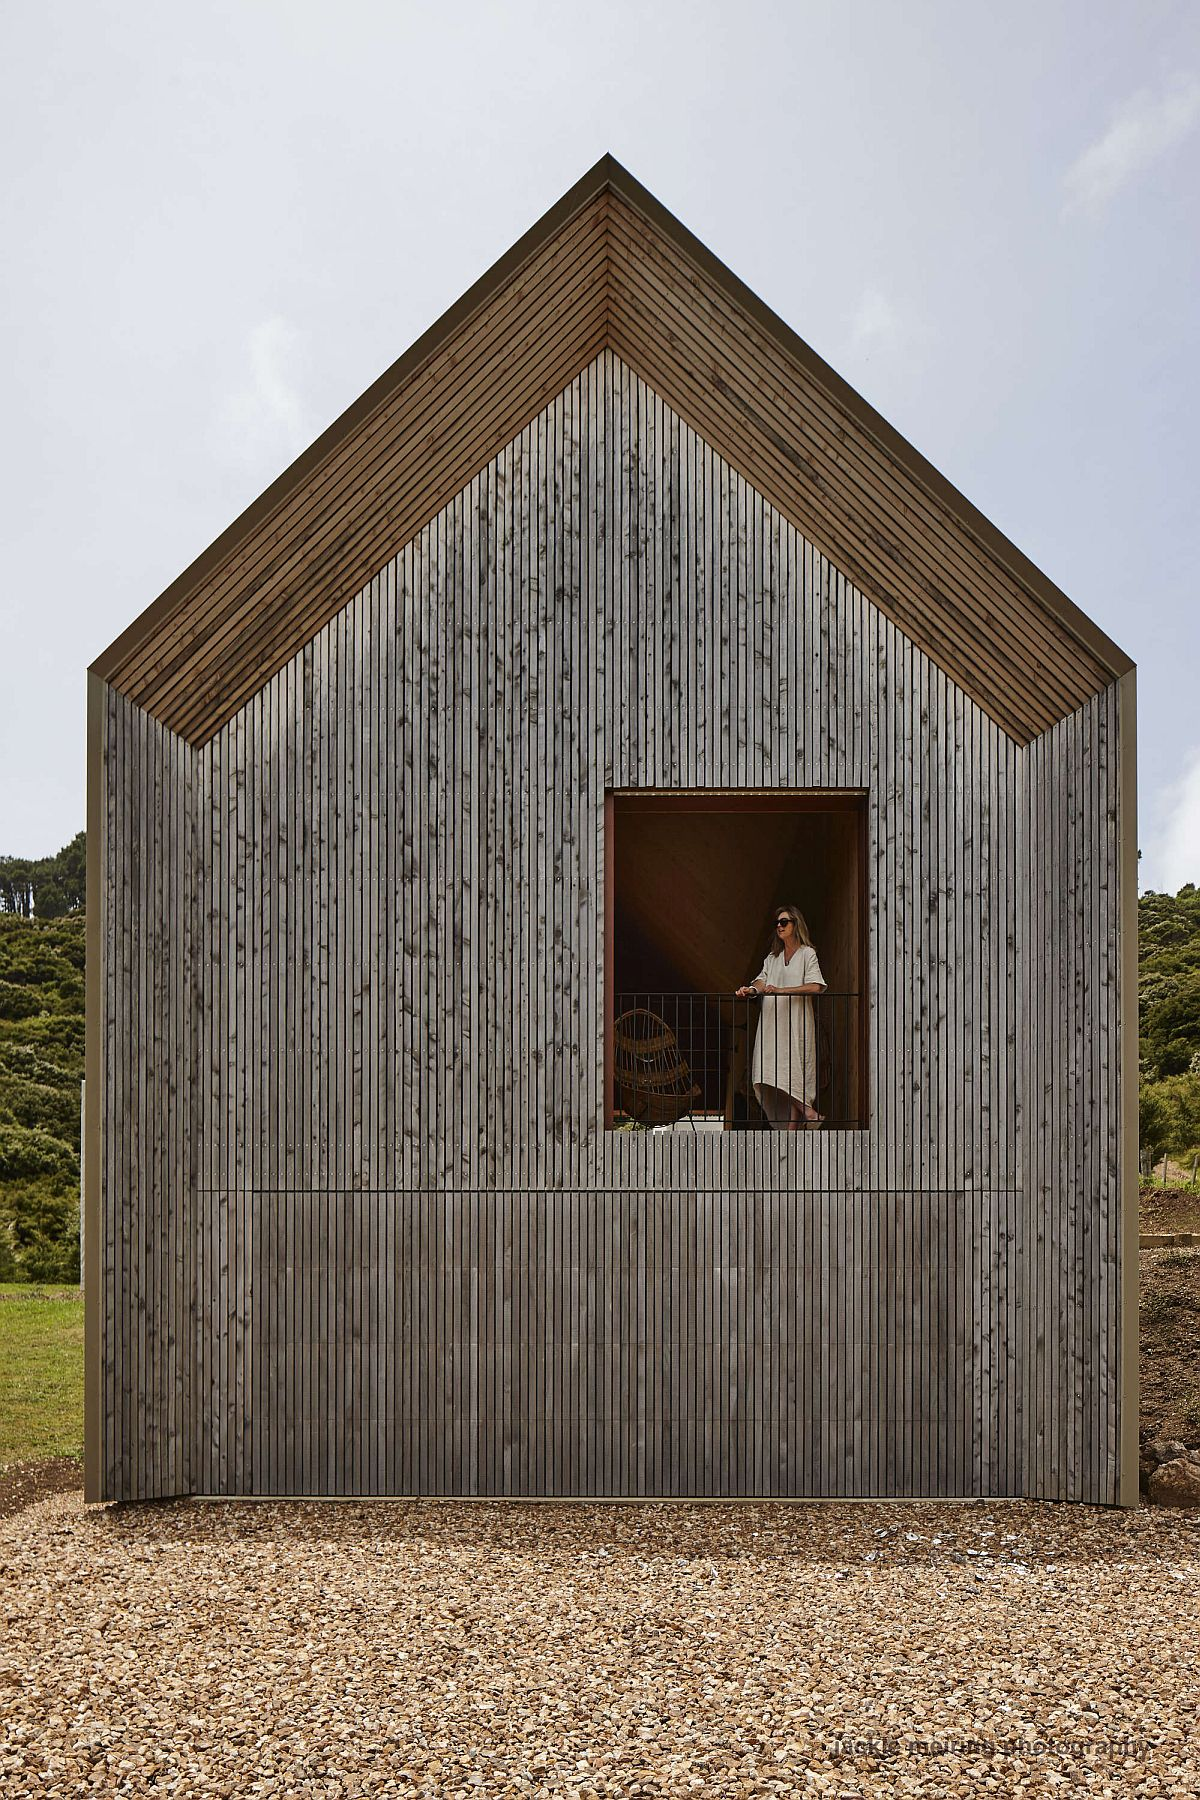 Woodsy-exterior-of-the-house-with-a-chapel-like-design-and-large-windows-63905